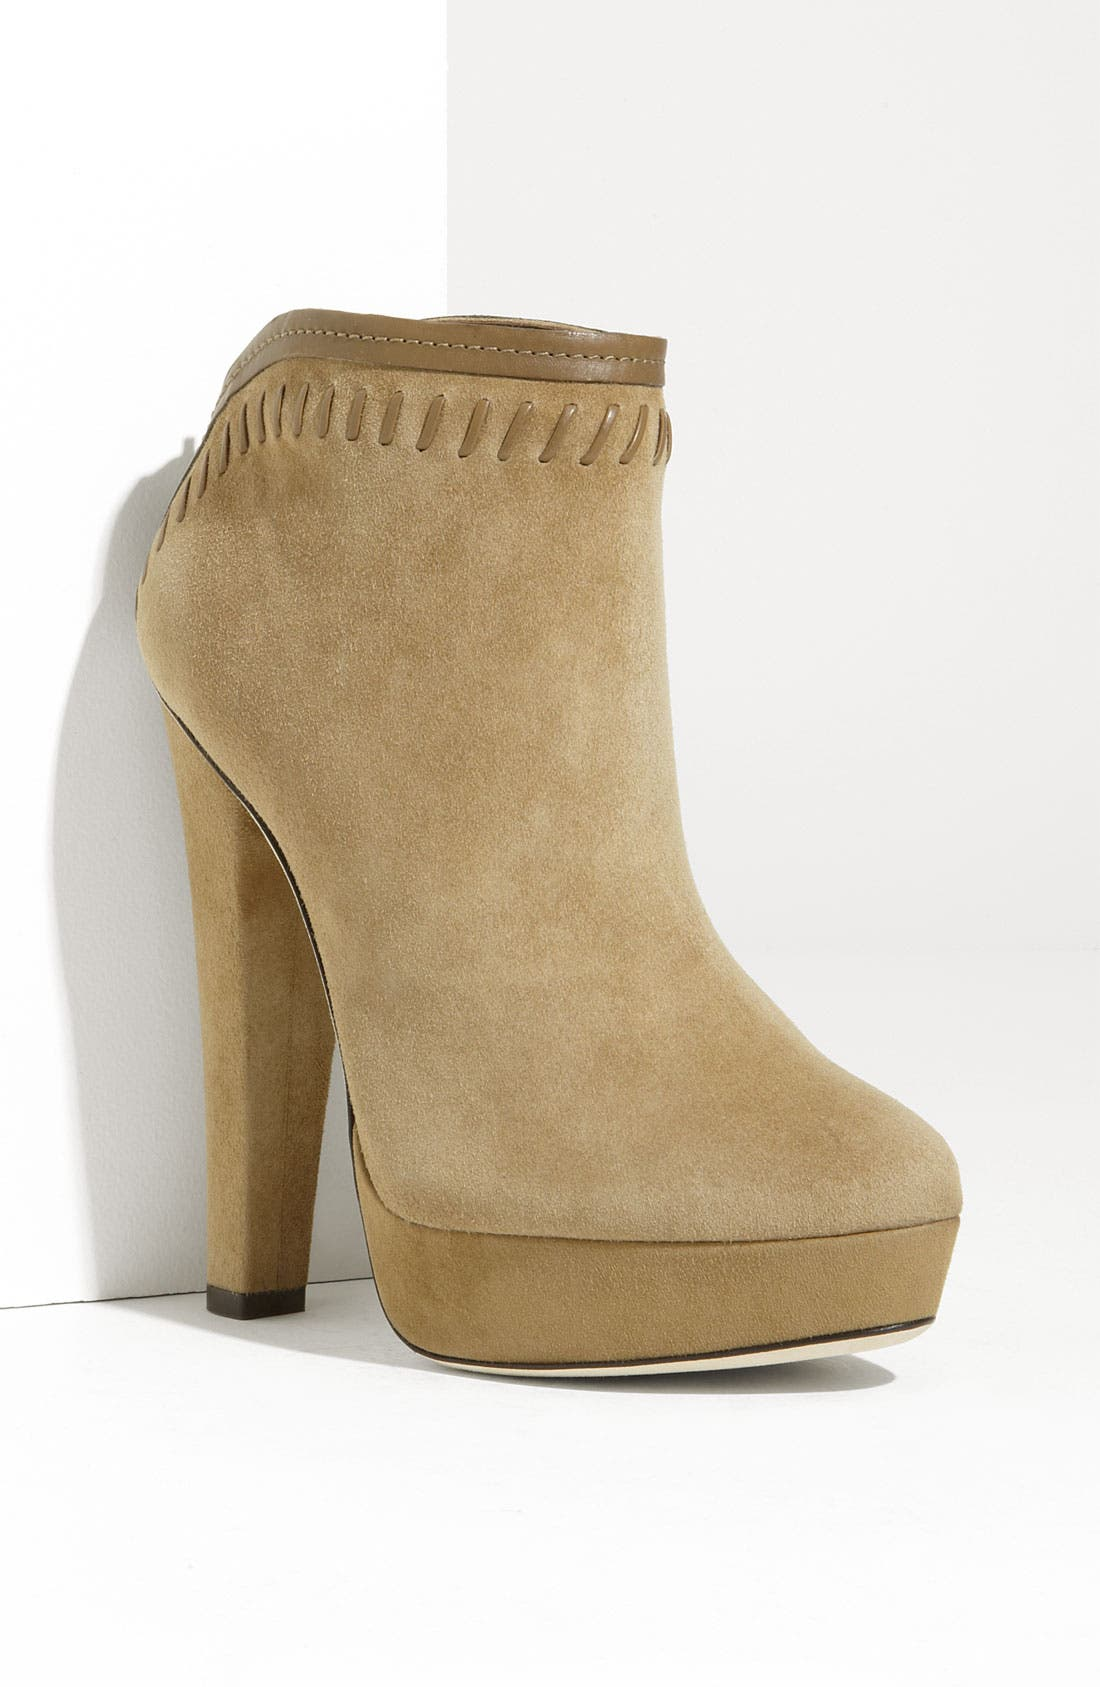 Main Image - Jimmy Choo 'Evans' Whipstitch Ankle Boot